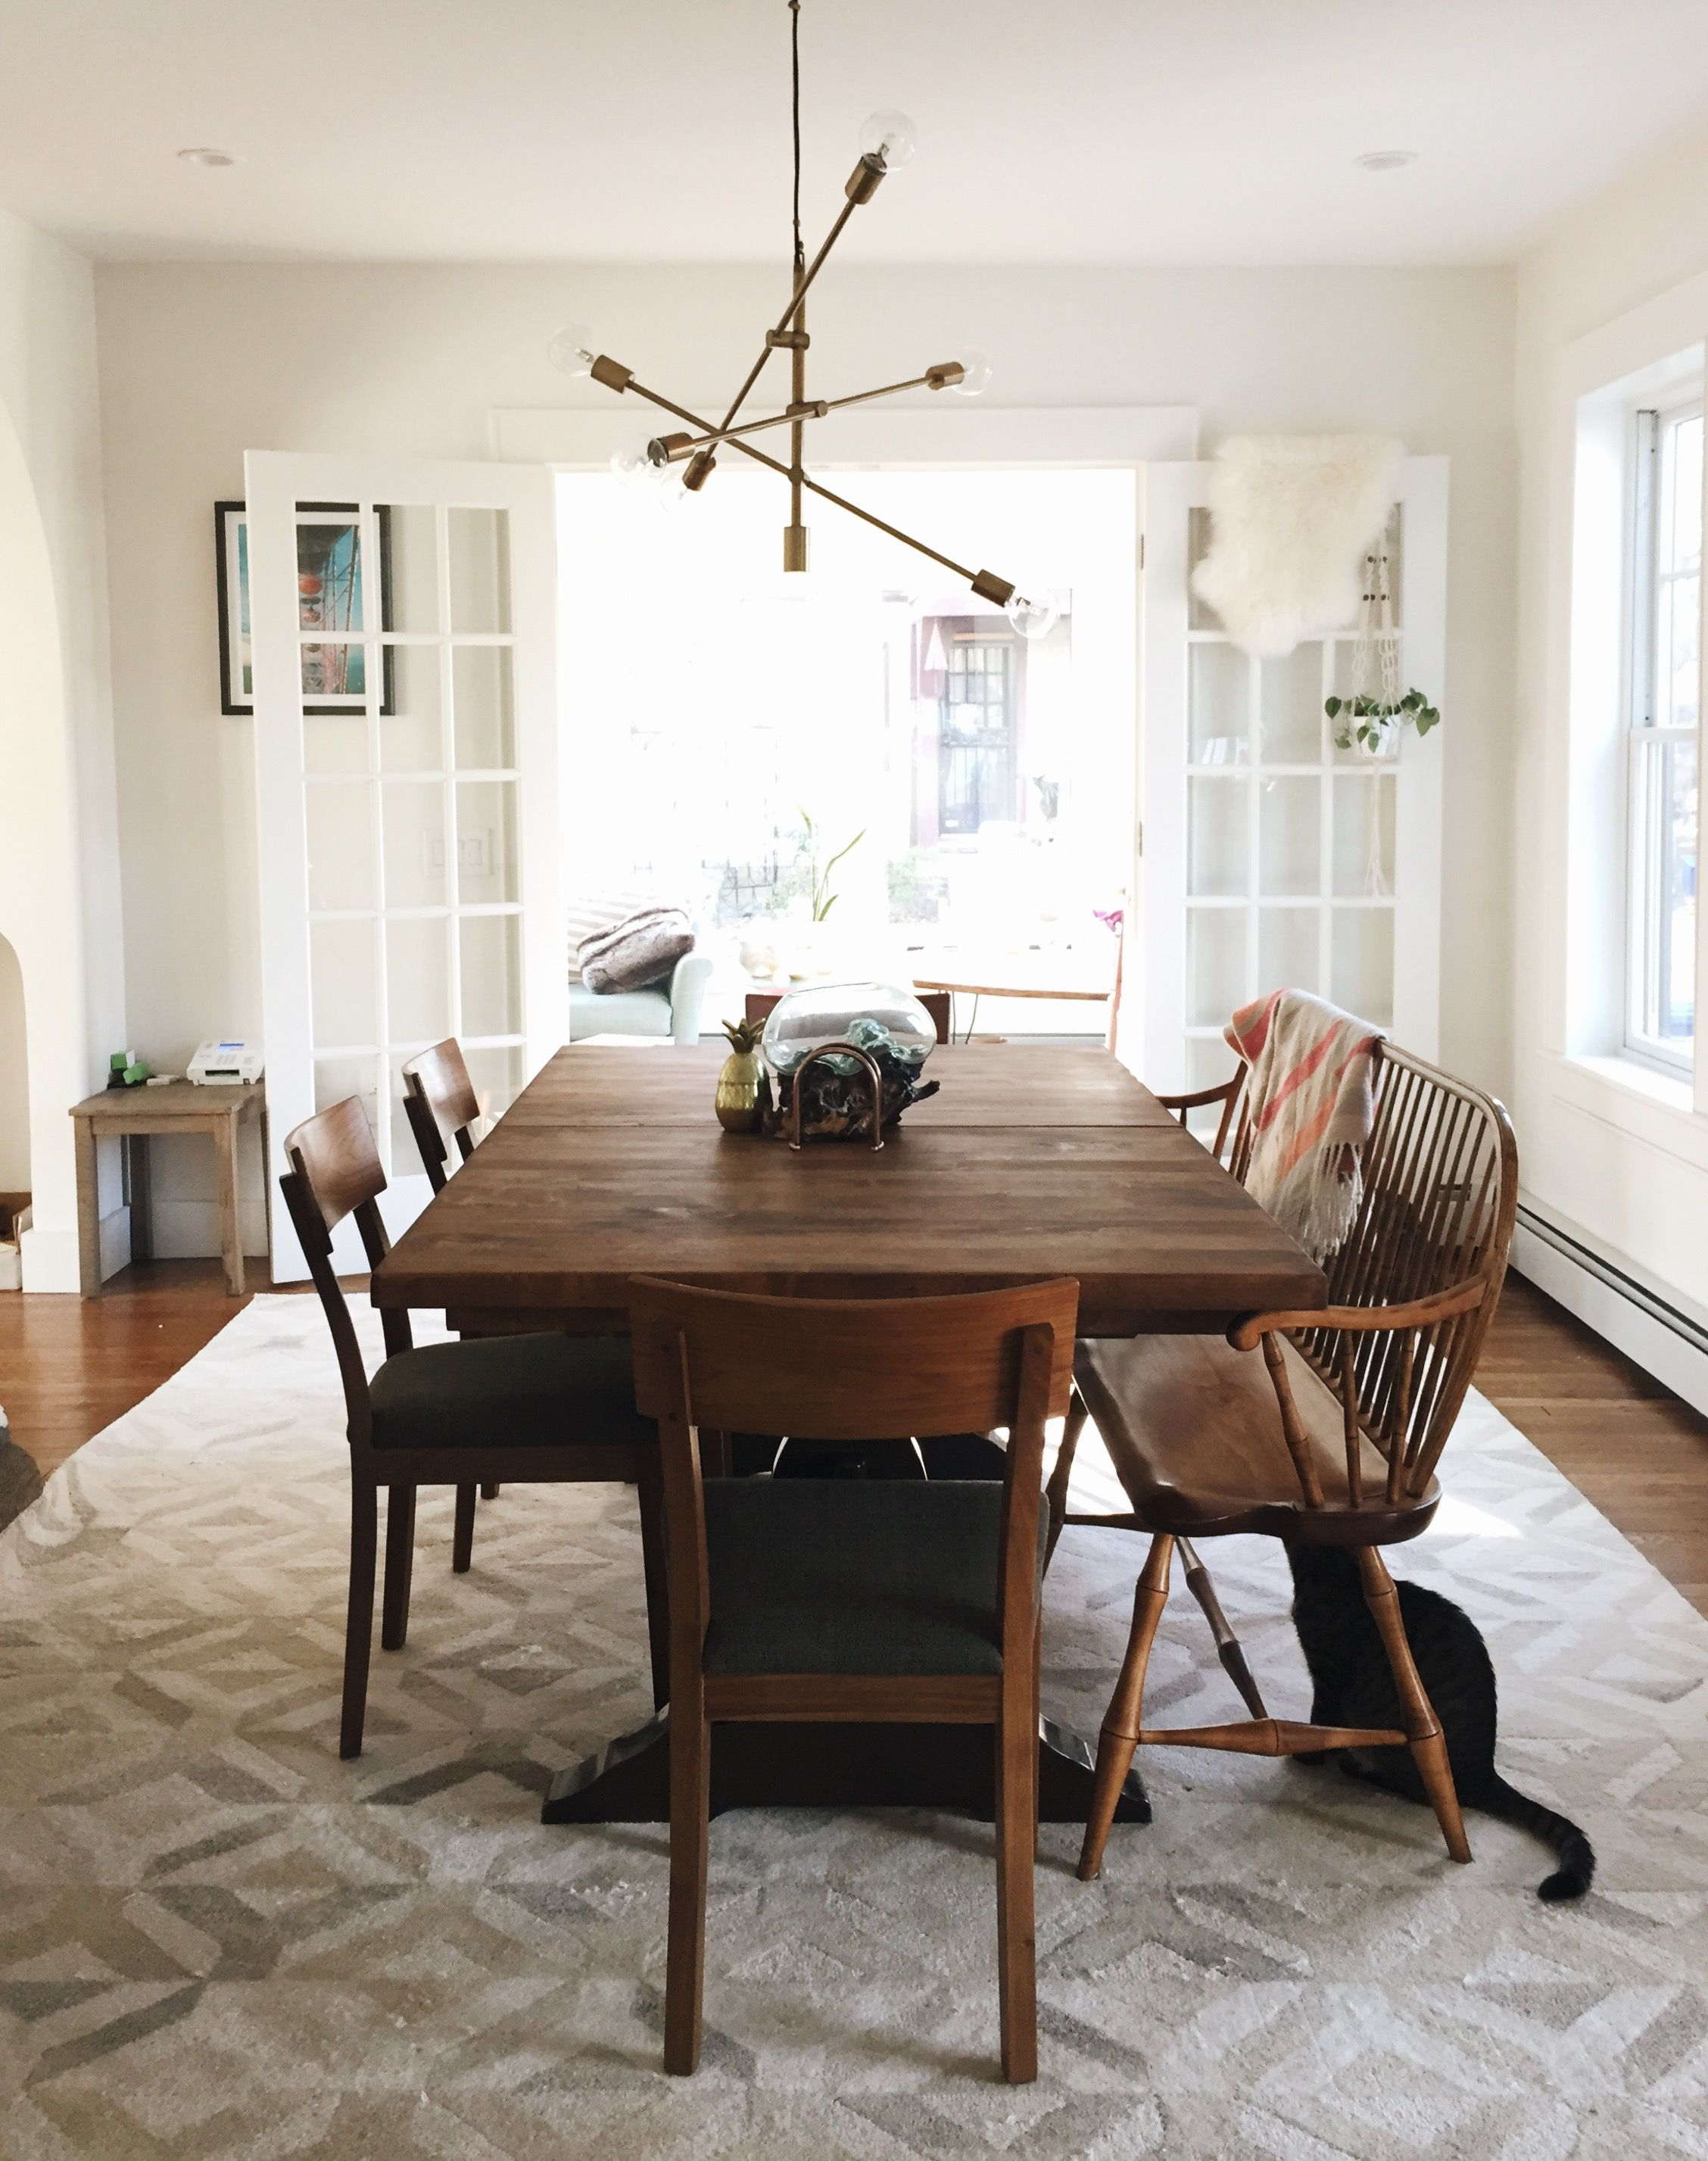 Autberry 5 Piece Dining Sets Inside Most Recent Our Dining Room! West Elm Marquis Rug West Elm Mobile Pendant (View 4 of 25)